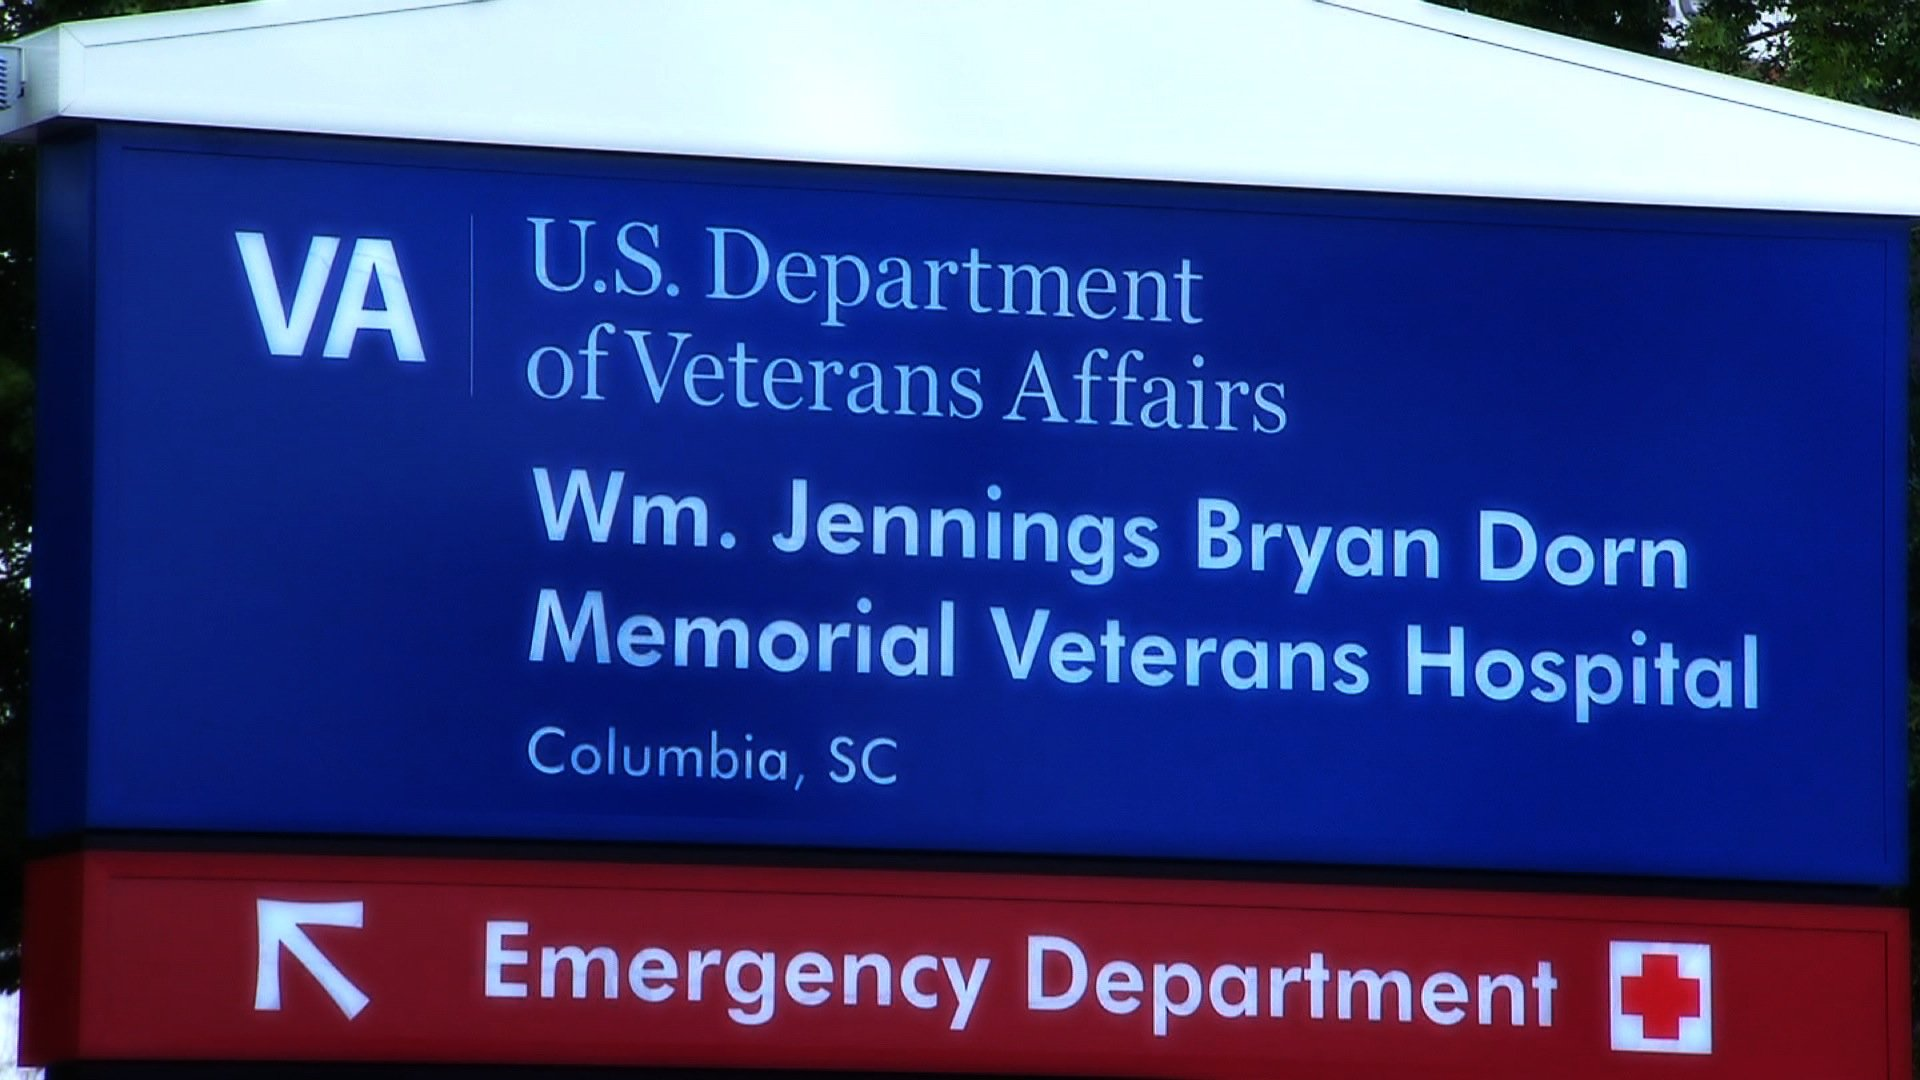 Military veterans are dying needlessly because of long waits and delayed care at U.S. veterans hospitals, a CNN investigation has found.